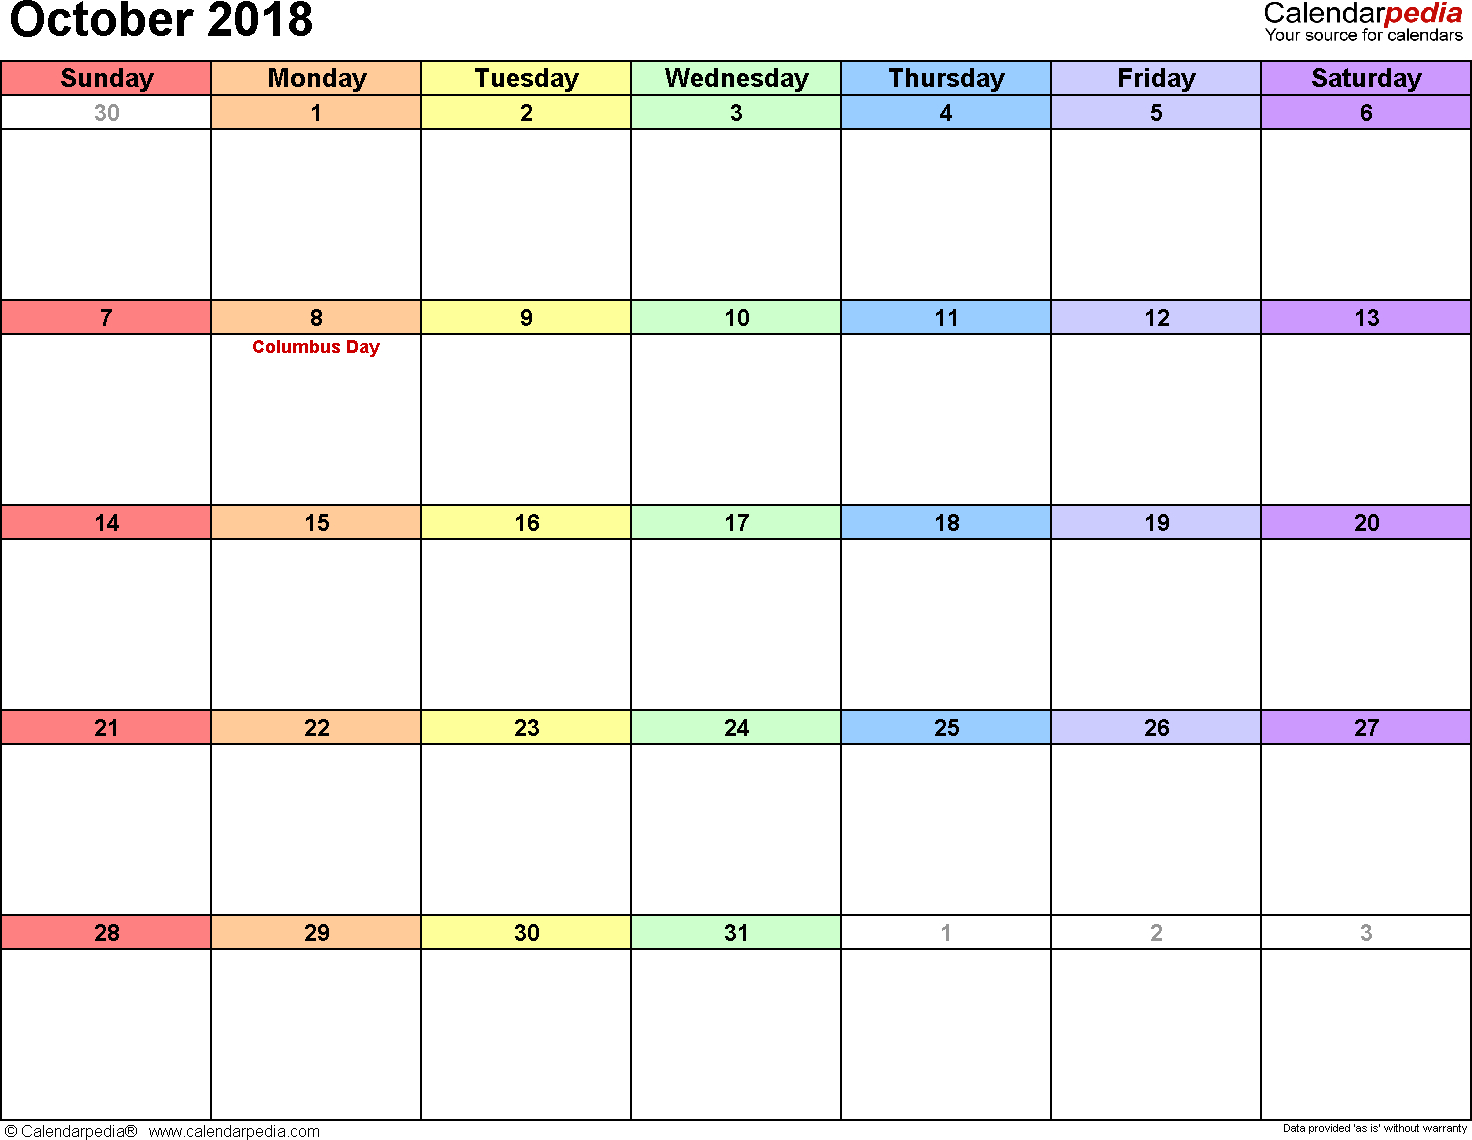 Calendarpedia, Word Templates For All Kinds Of Calendar for Calendarpedia 2020 Excel